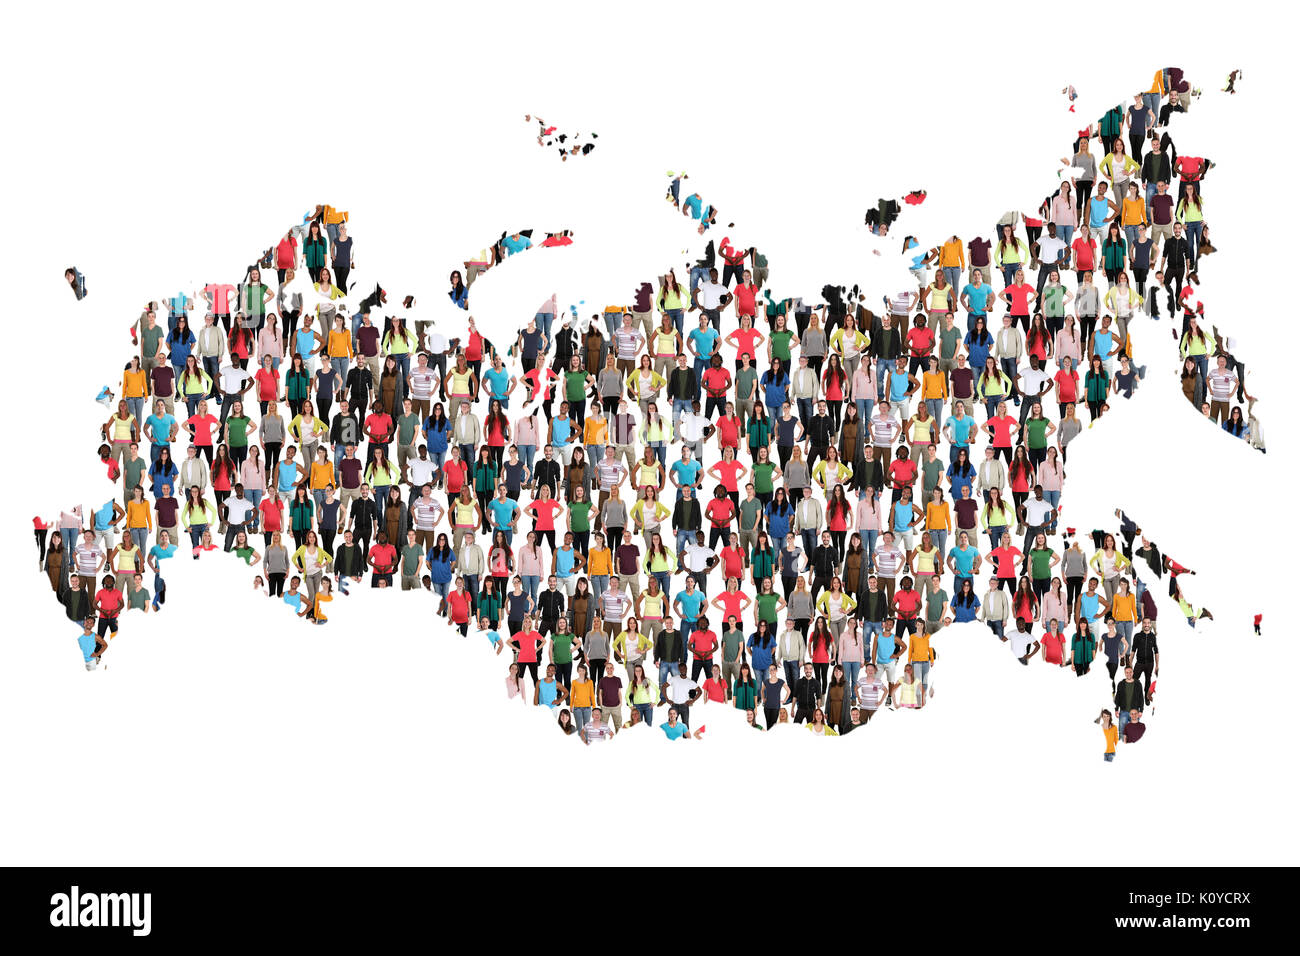 Russia map multicultural group of people integration immigration diversity isolated - Stock Image